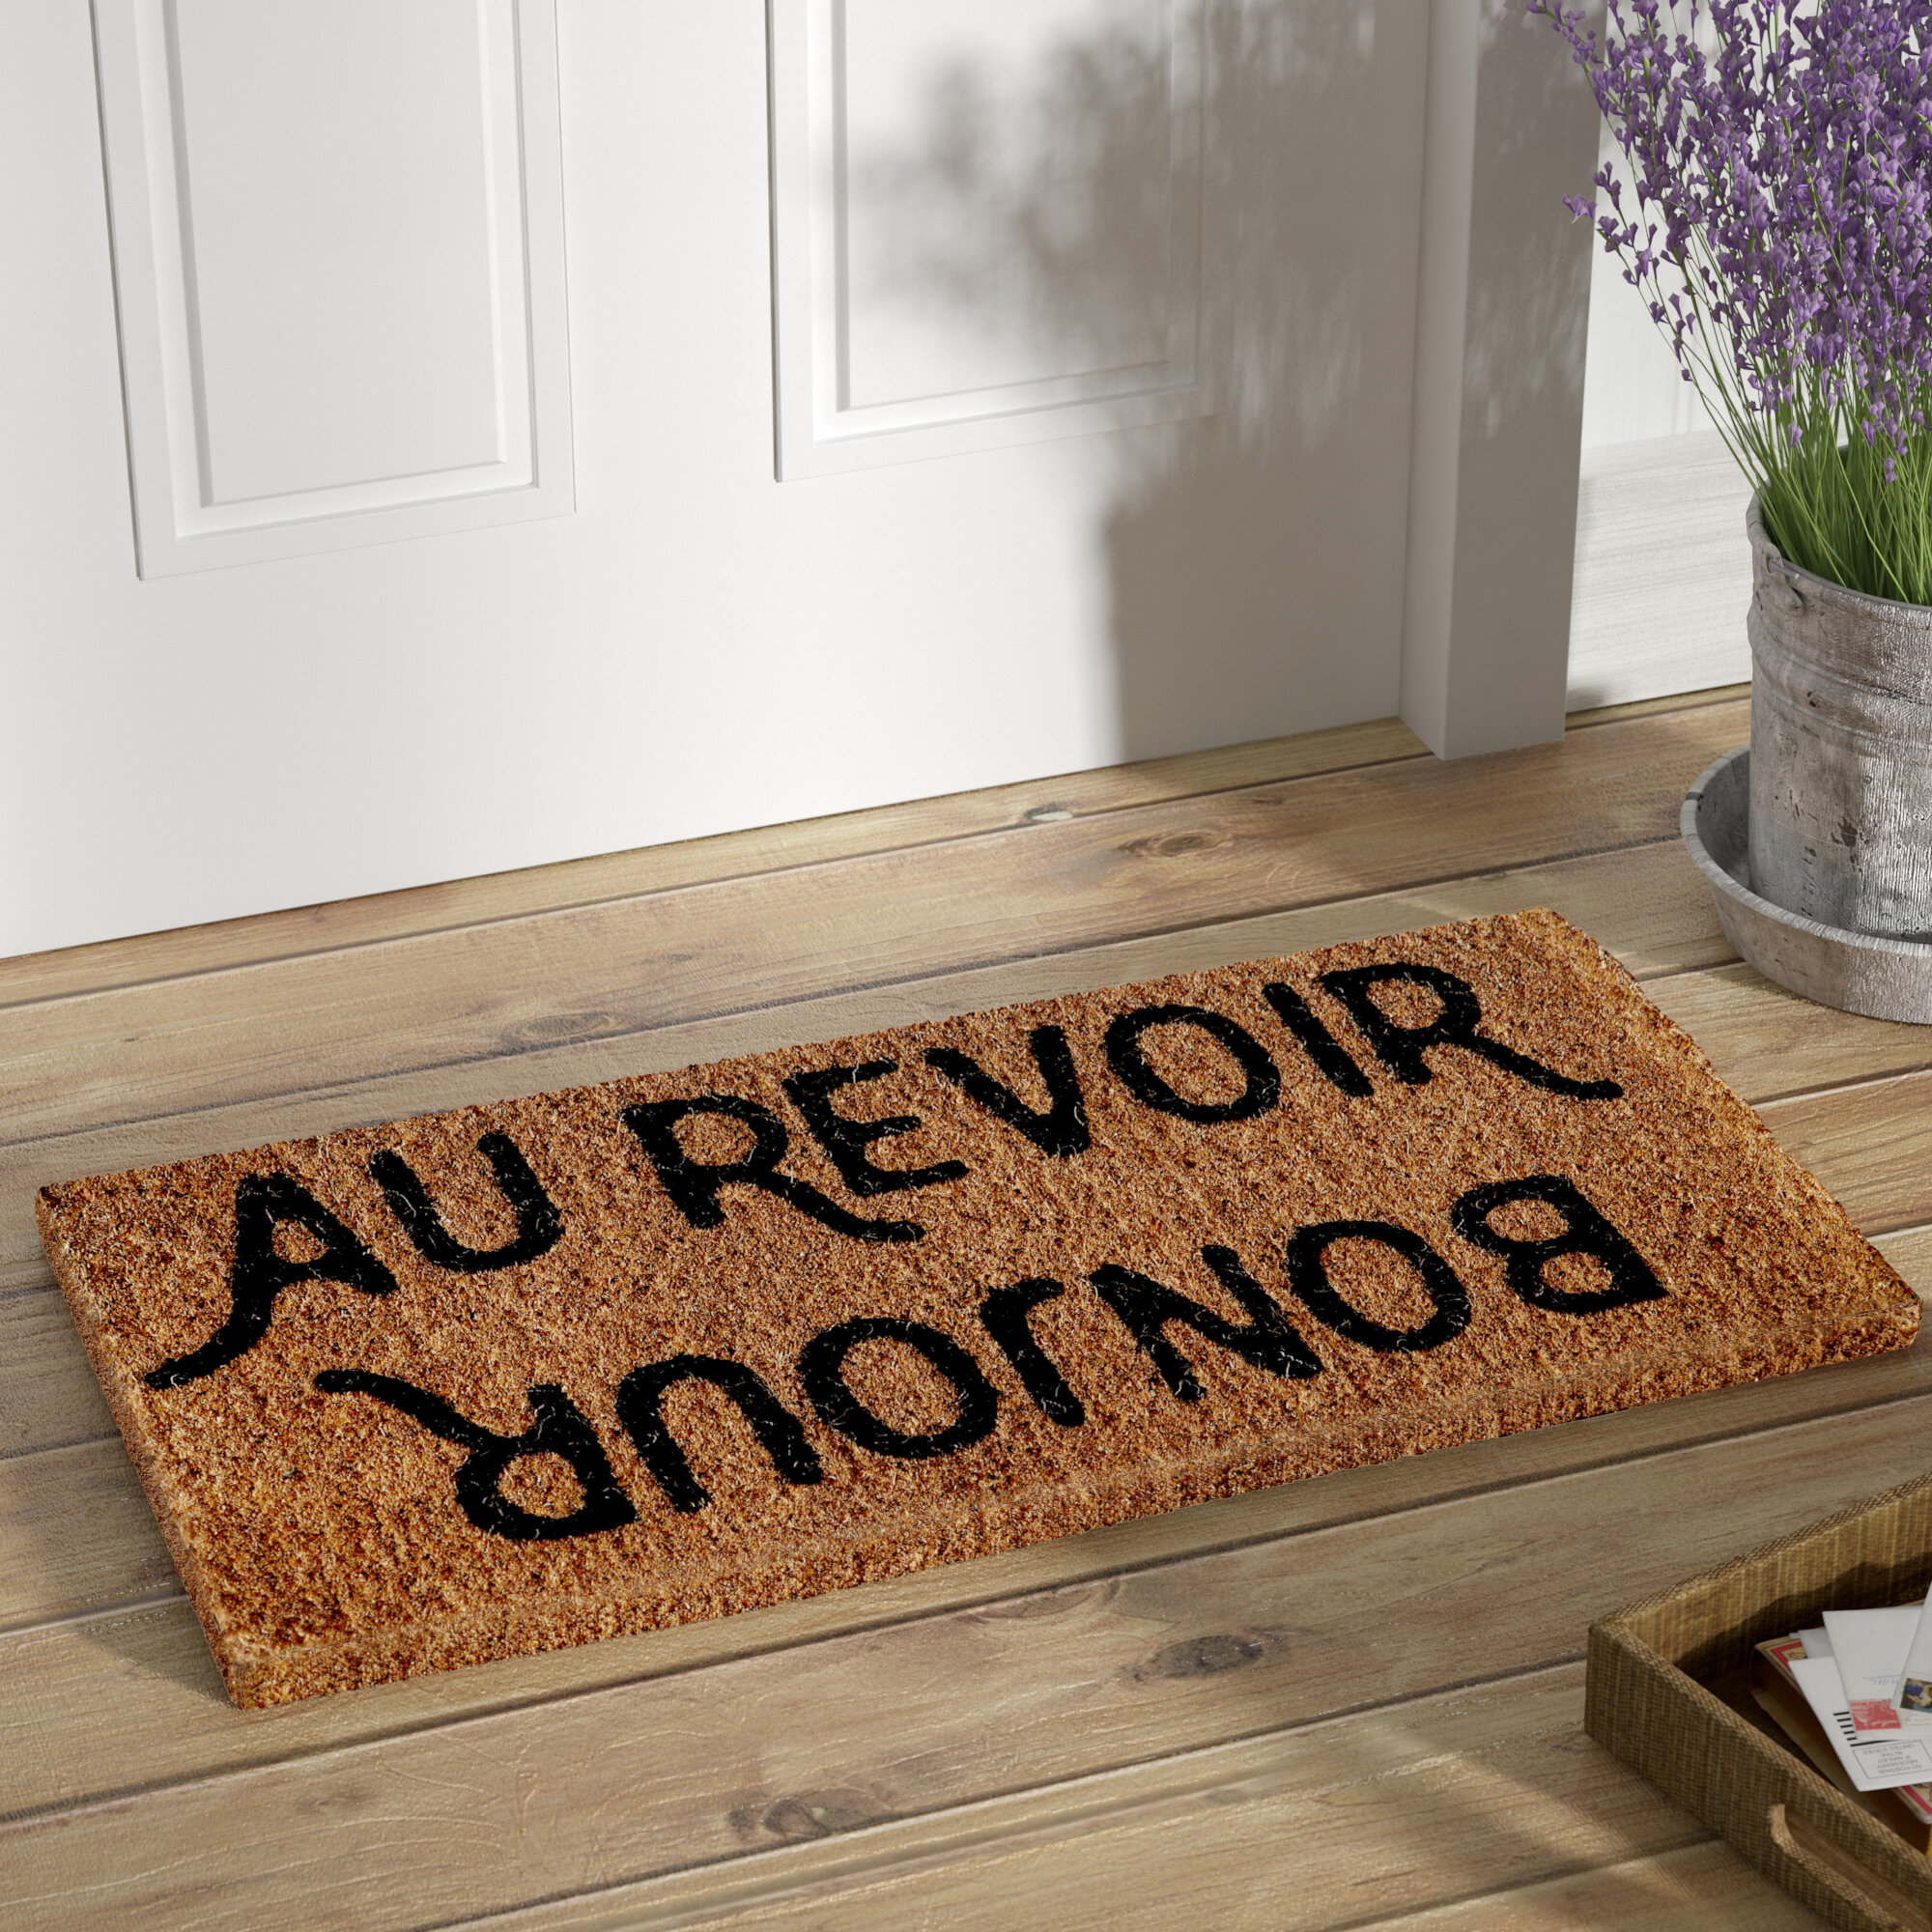 coir round rubber with in wooden door doormat attractive homeowners inspiration decor personalized half mats ideas ornament front house ac home your surname of space entrance contemporary presenting geometric doormats decorate to beautiful